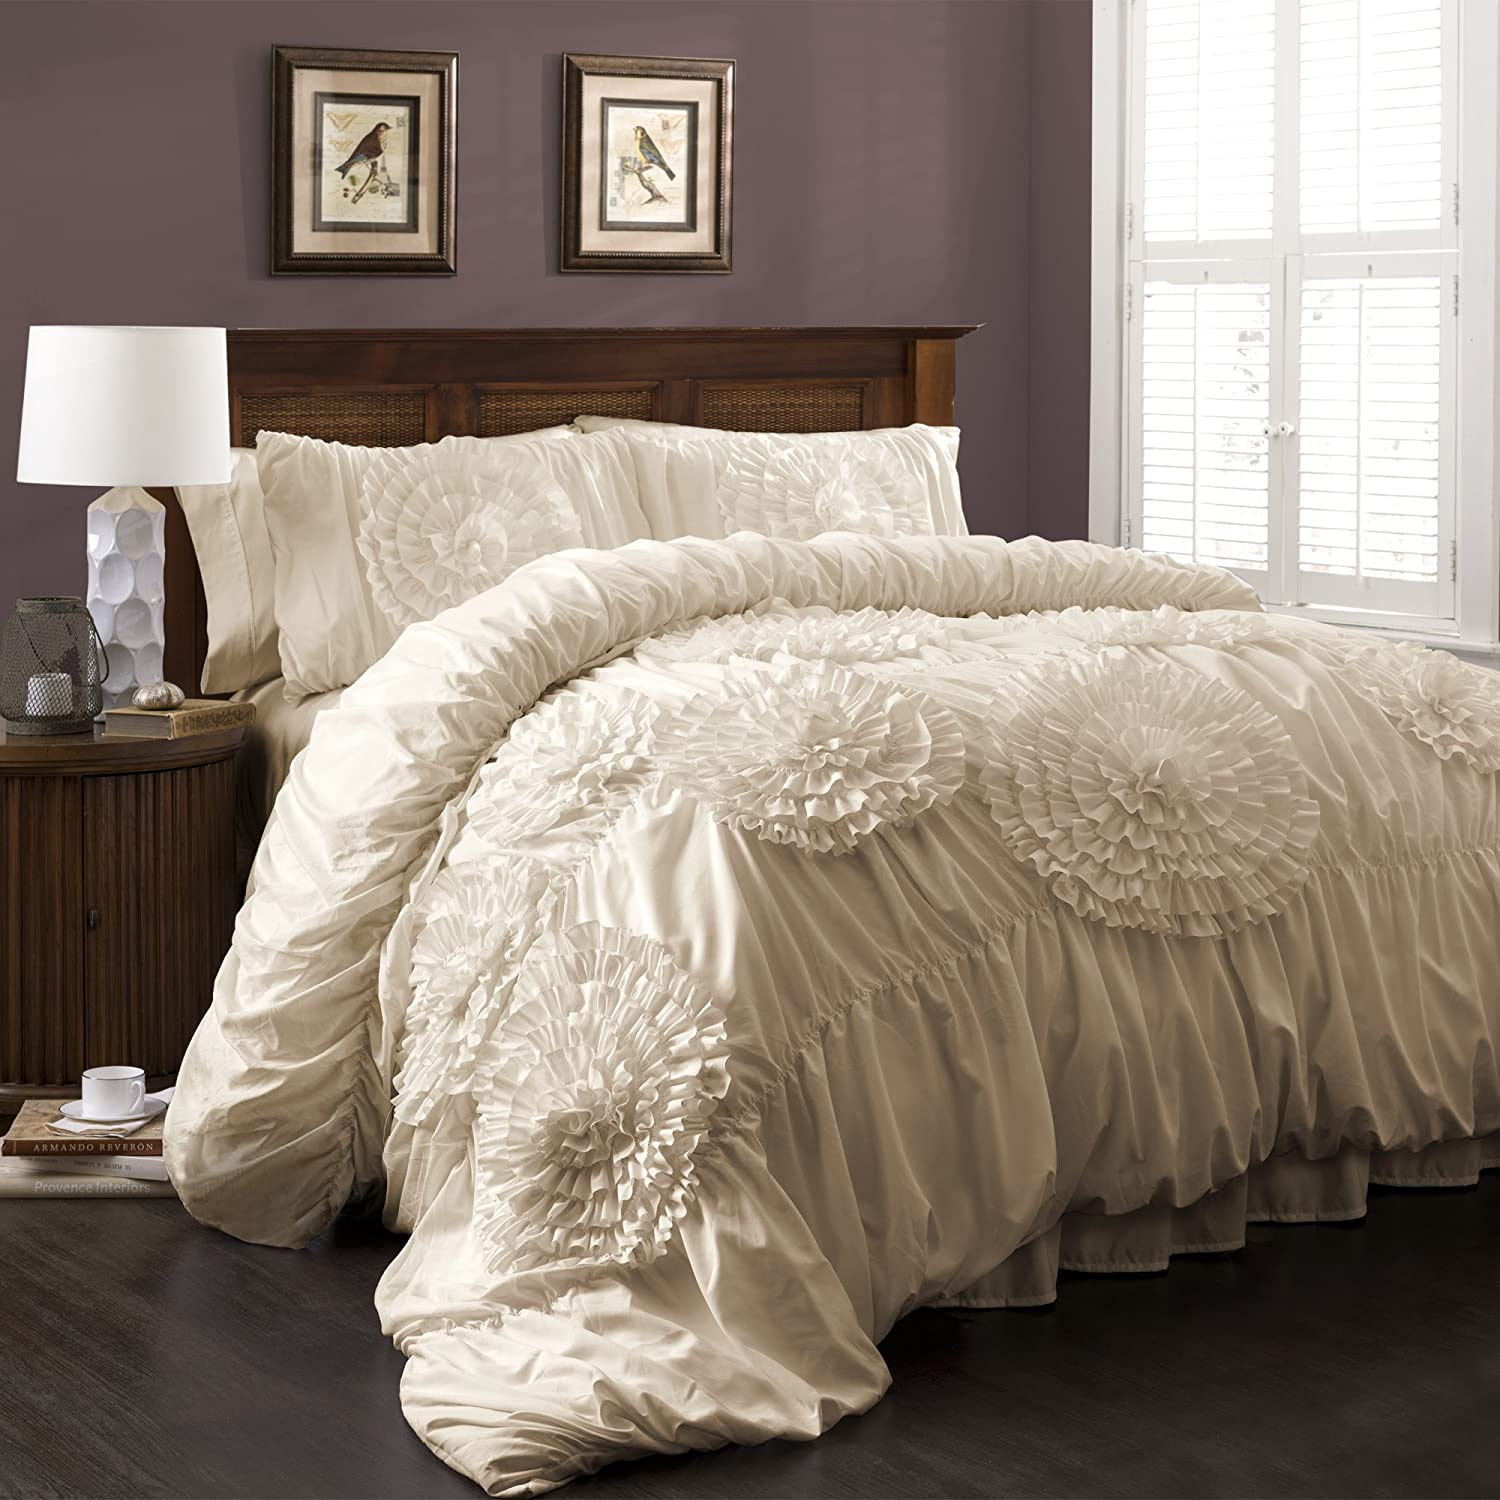 sharpen pdpimgshortdescription qlt bloomingdale wid comp comforter waterford usm queen sets set fpx op layer tif product resmode ivory shop paloma s